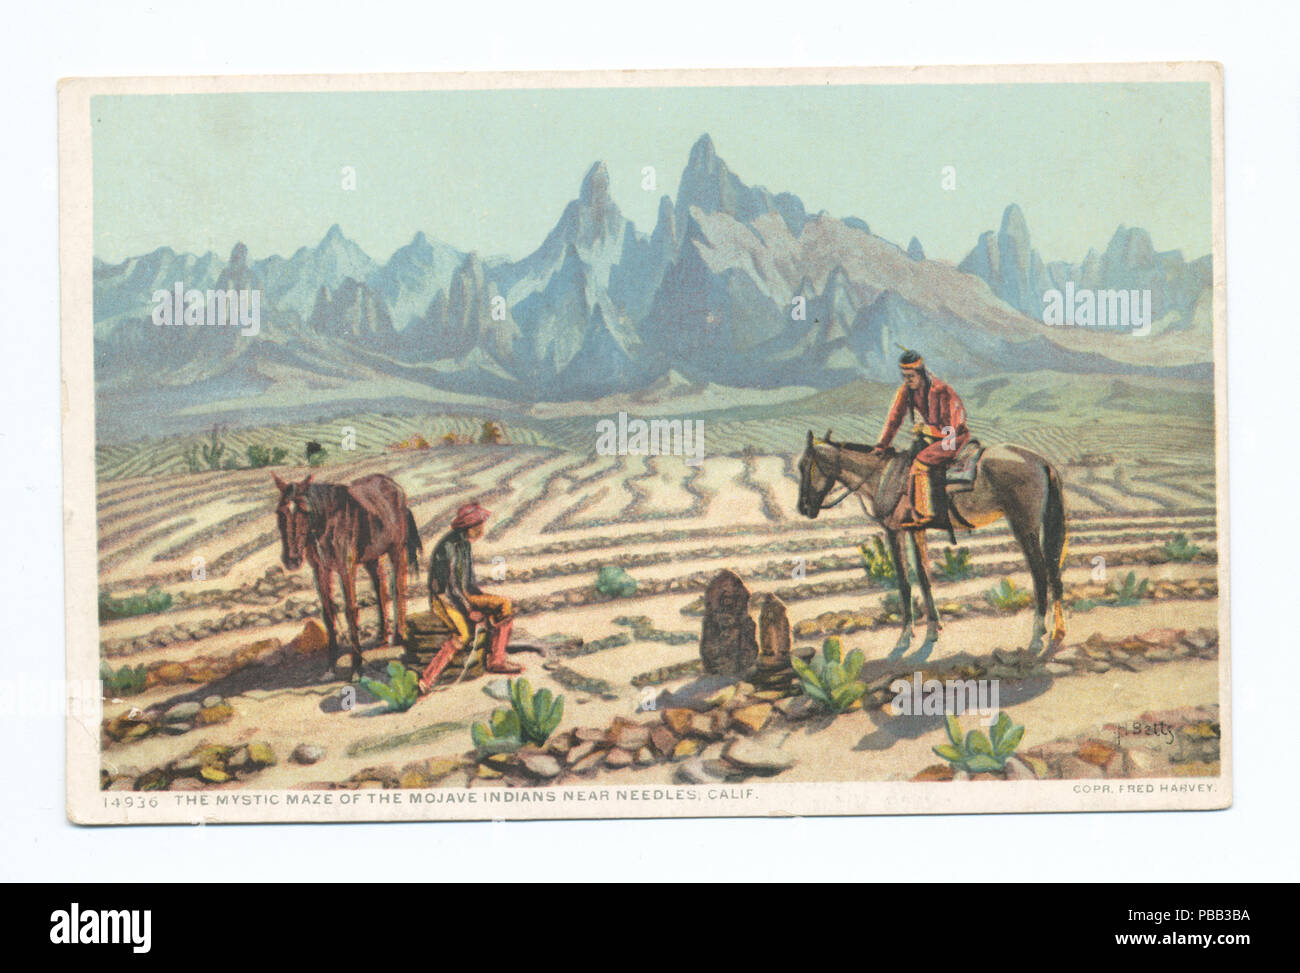 1078 Mystic Maze of the Mojave Indians, Needles, Calif (NYPL b12647398-70470) - Stock Image